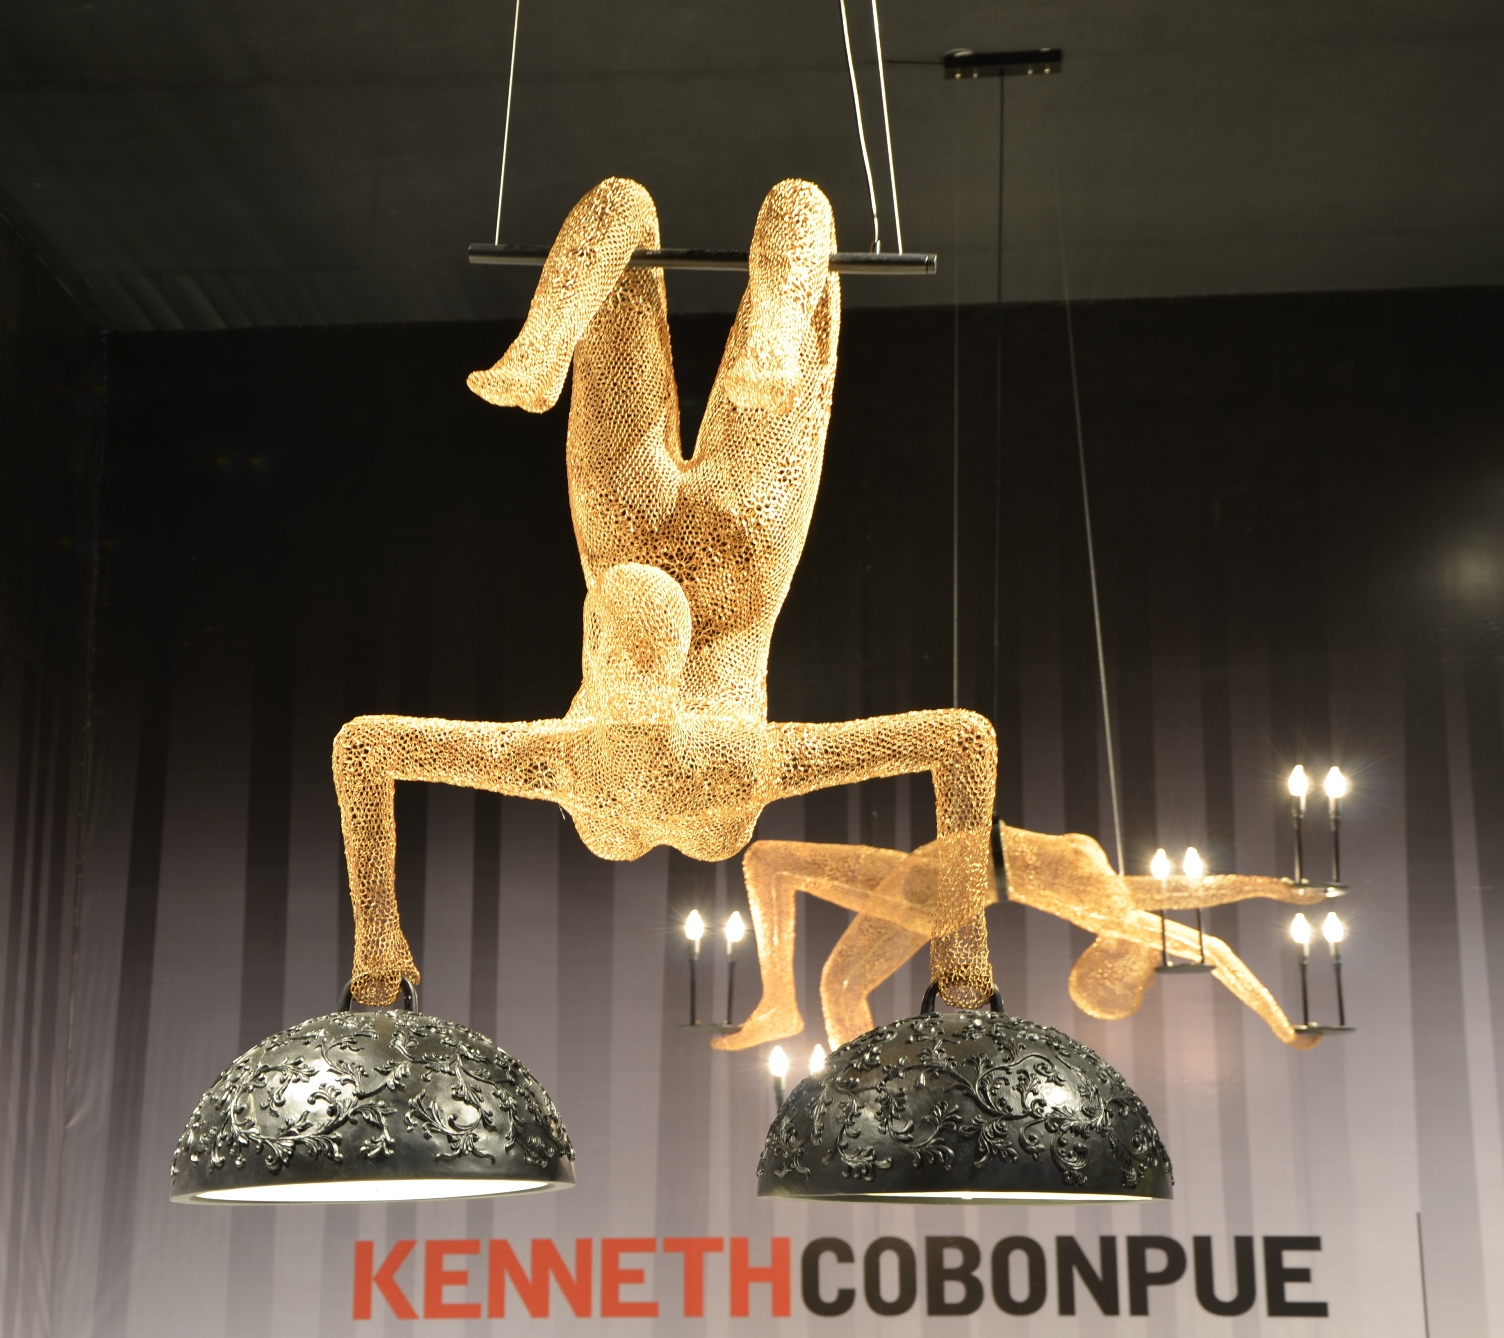 33 kenneth cobonpue isaloni salone del mobile 2015 milan targi meblowe w mediolanie interior furniture light fixtures design tendencies trends review